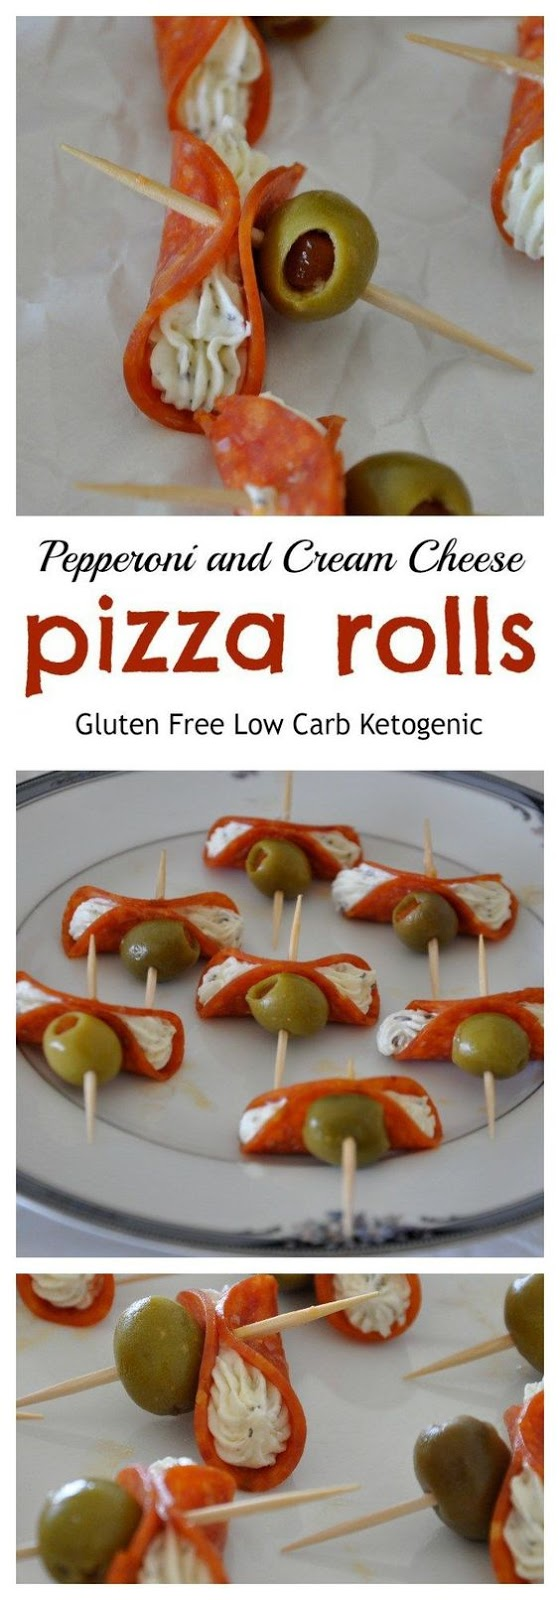 Pepperoni and Cream Cheese Pizza Rolls - Gluten Free #APPETIZER #GLUTEN FREE